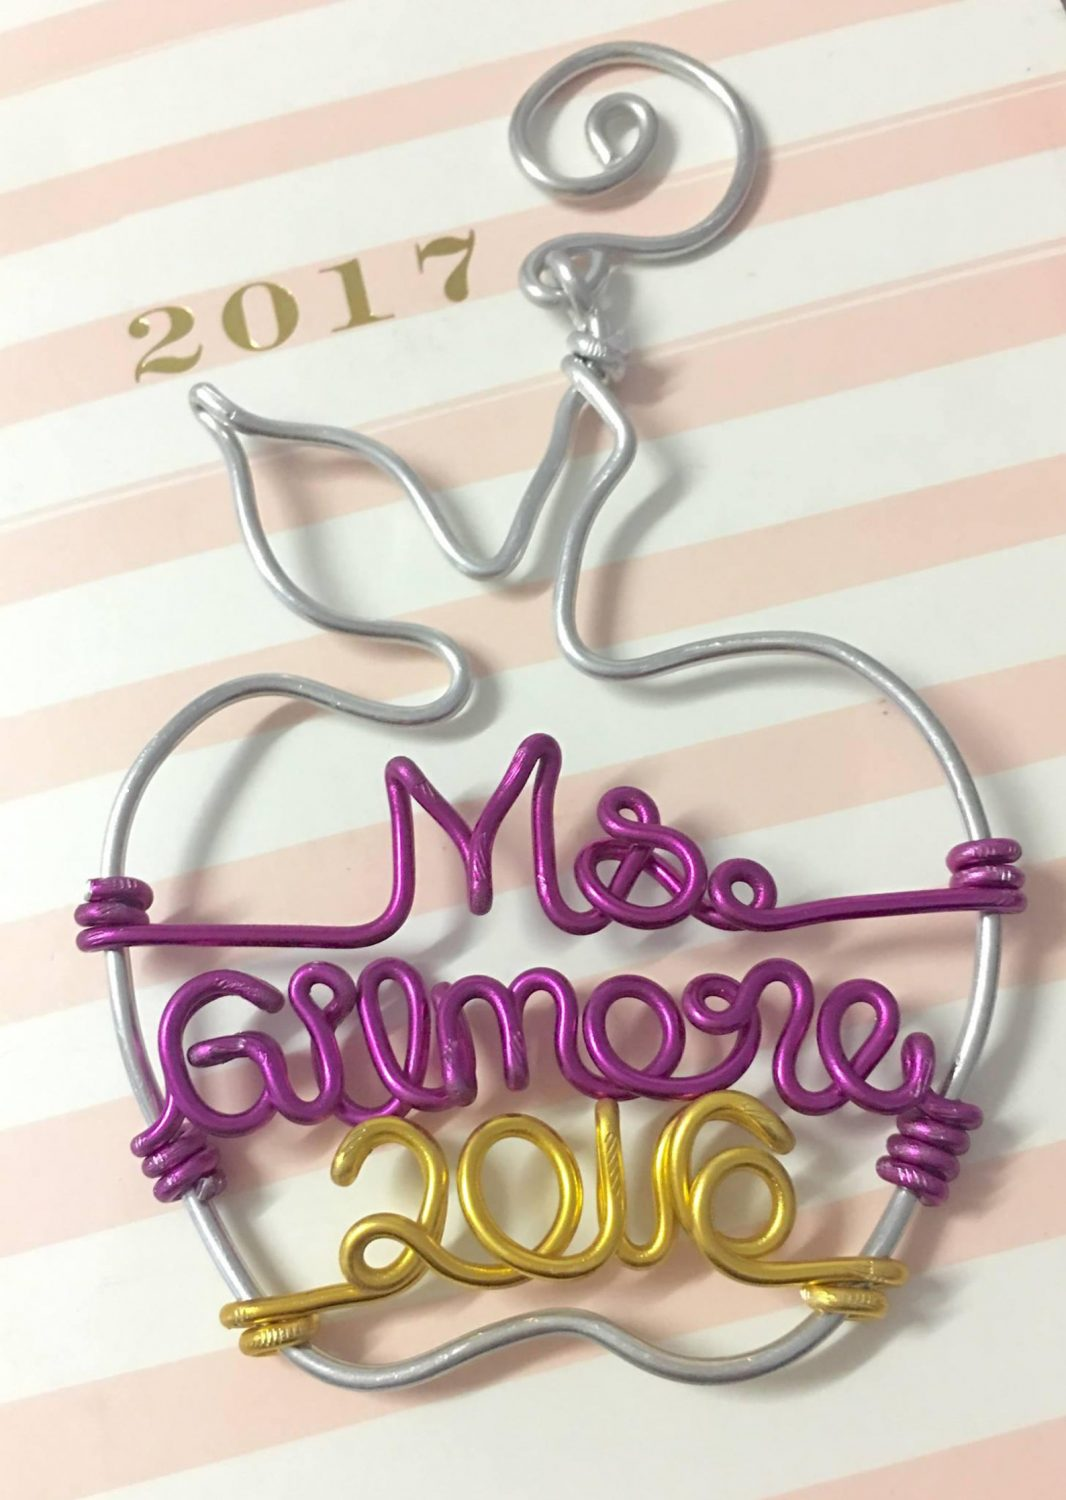 Personalized wire ornament by Passion and Love